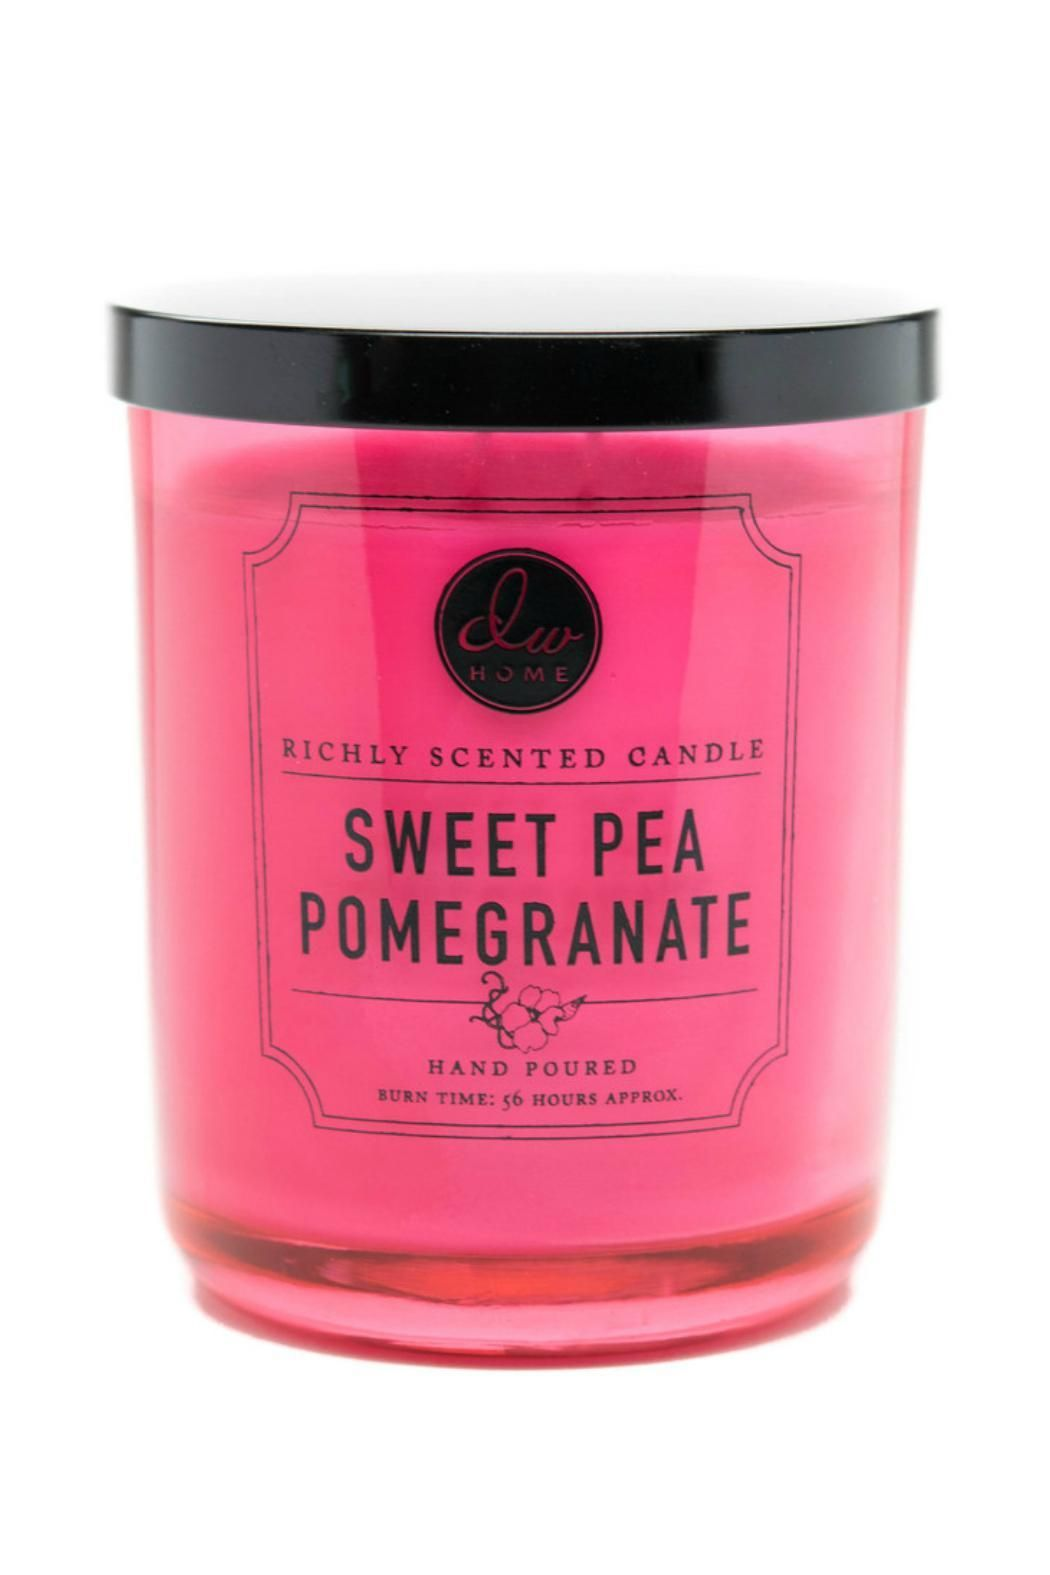 Dw Home Sweet Pea Pomegranate Candle With Images Scented